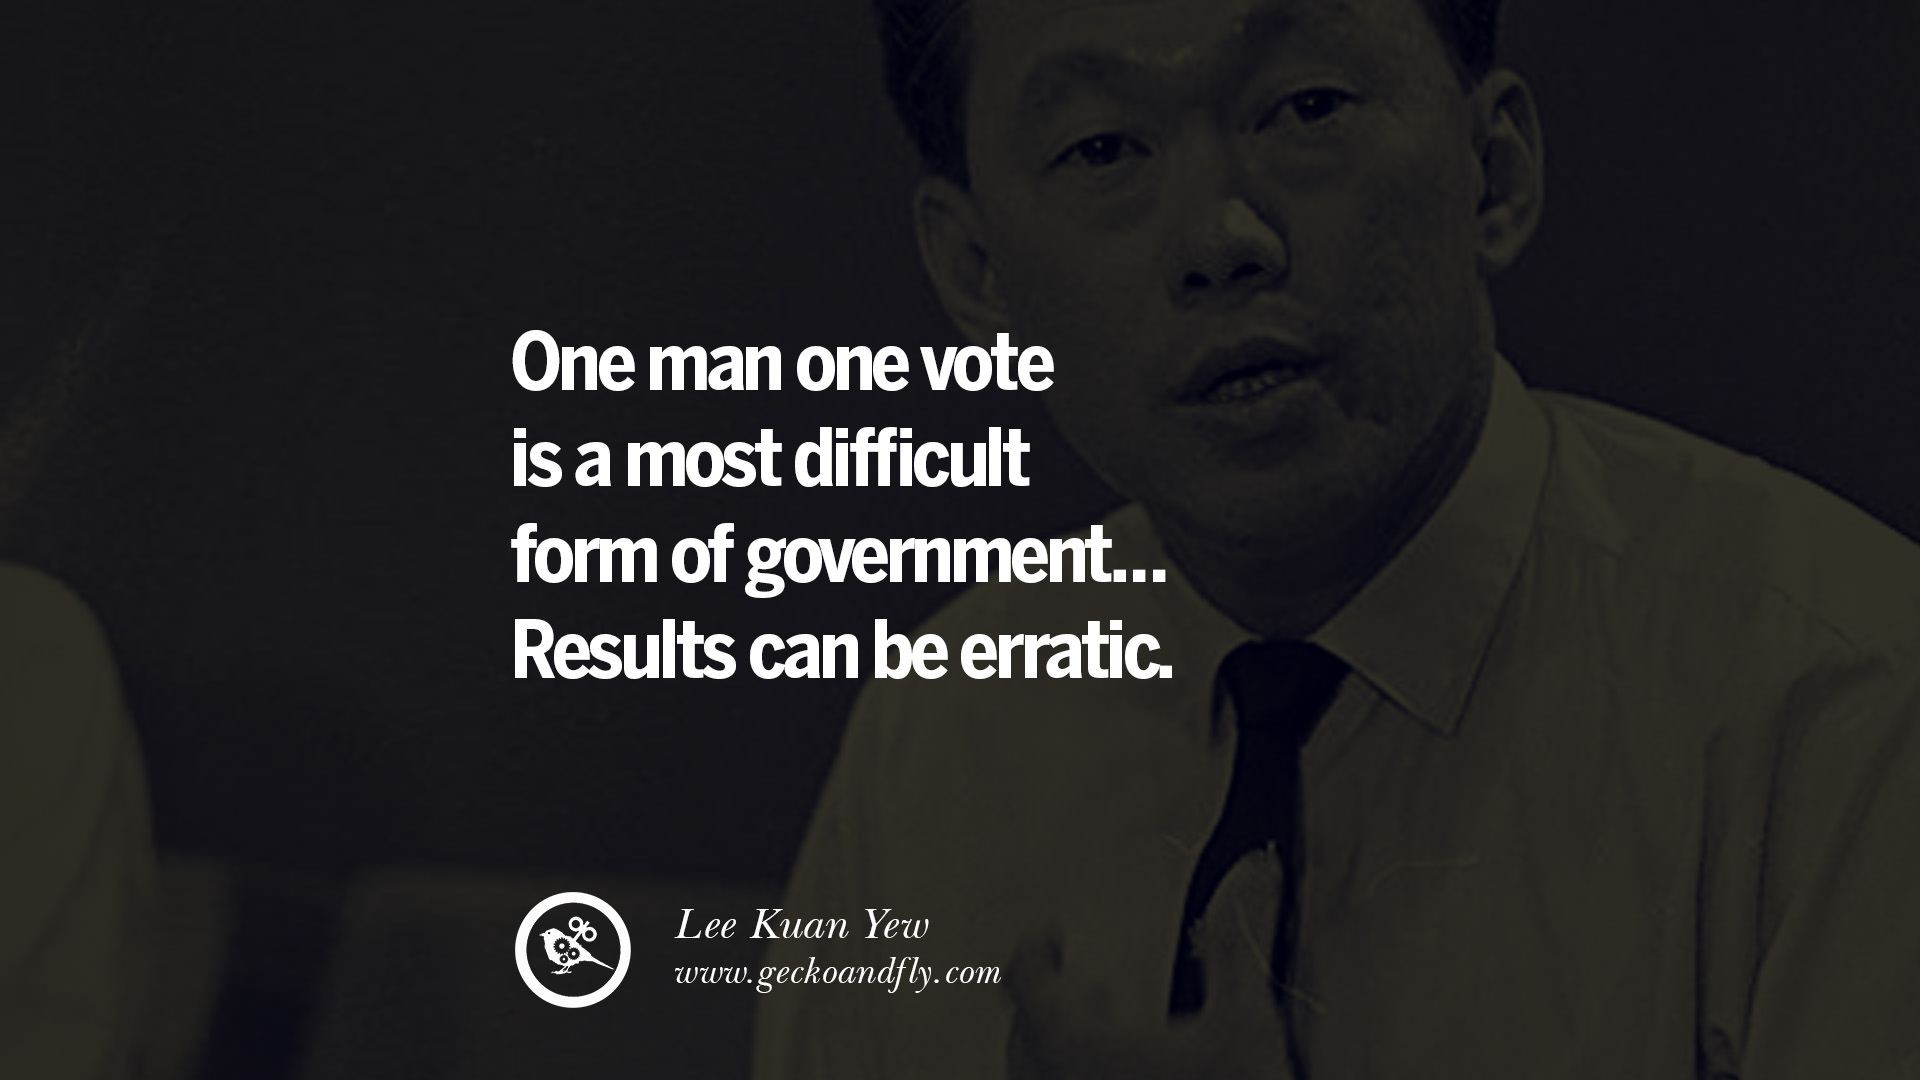 Diversity And Inclusion Quotes 25 Inspiring Lee Kuan Yew Quotes On From Third World To First